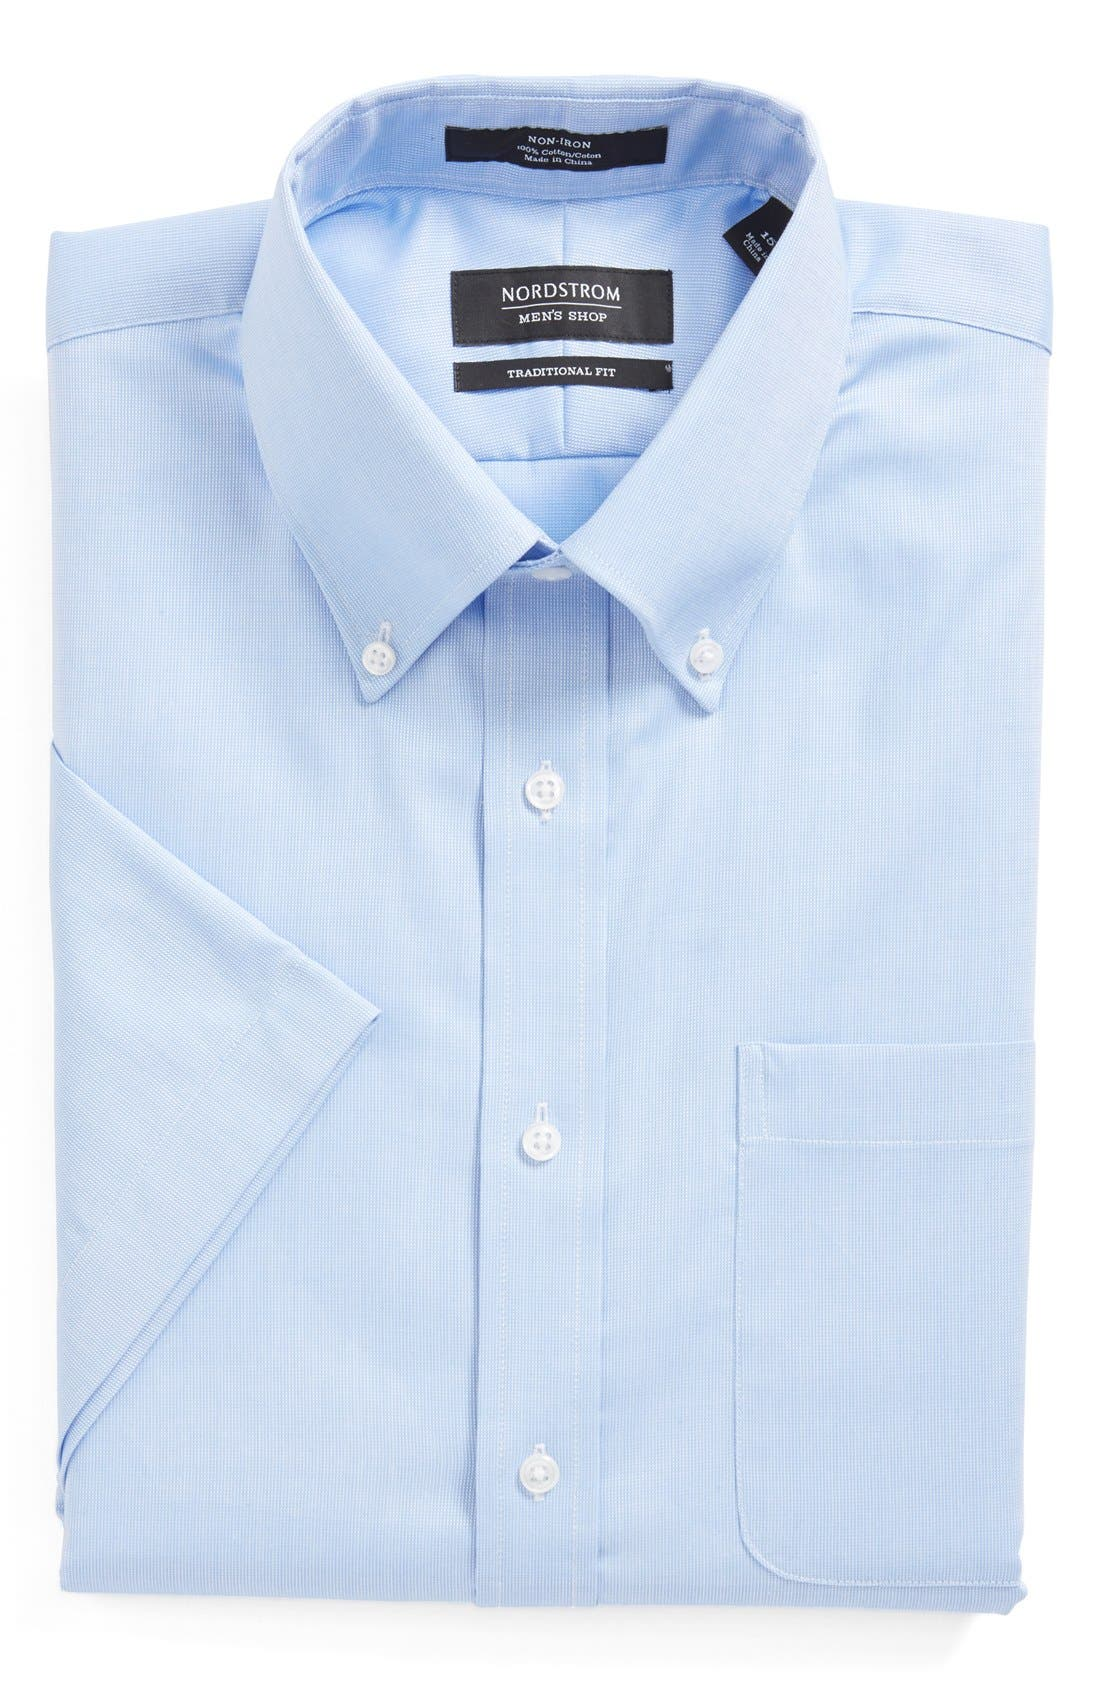 Main Image - Nordstrom Men's Shop Traditional Fit Non-Iron Short Sleeve Dress Shirt (Online Only)